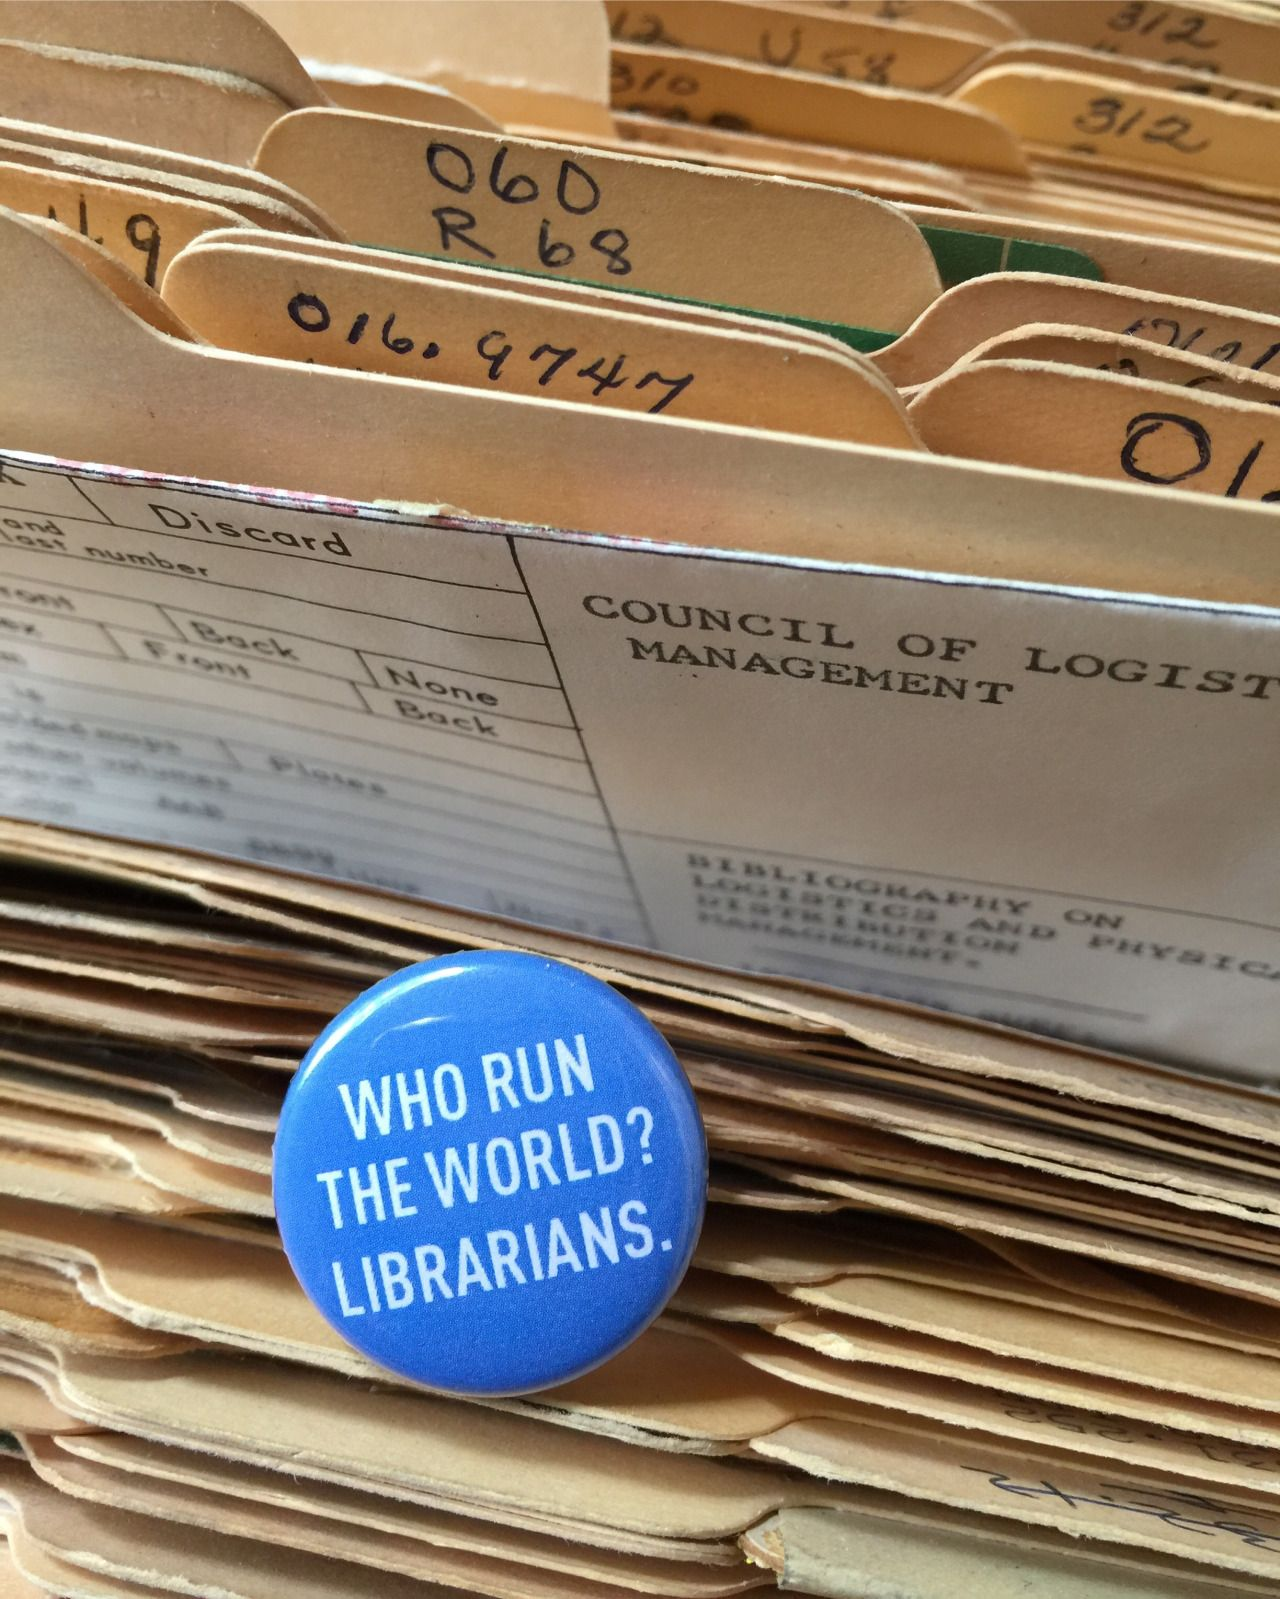 Reblogging Library Lore,  Upcoming Events In Our Branches, Our Favorite Bookmatches (get Your Own!)  And